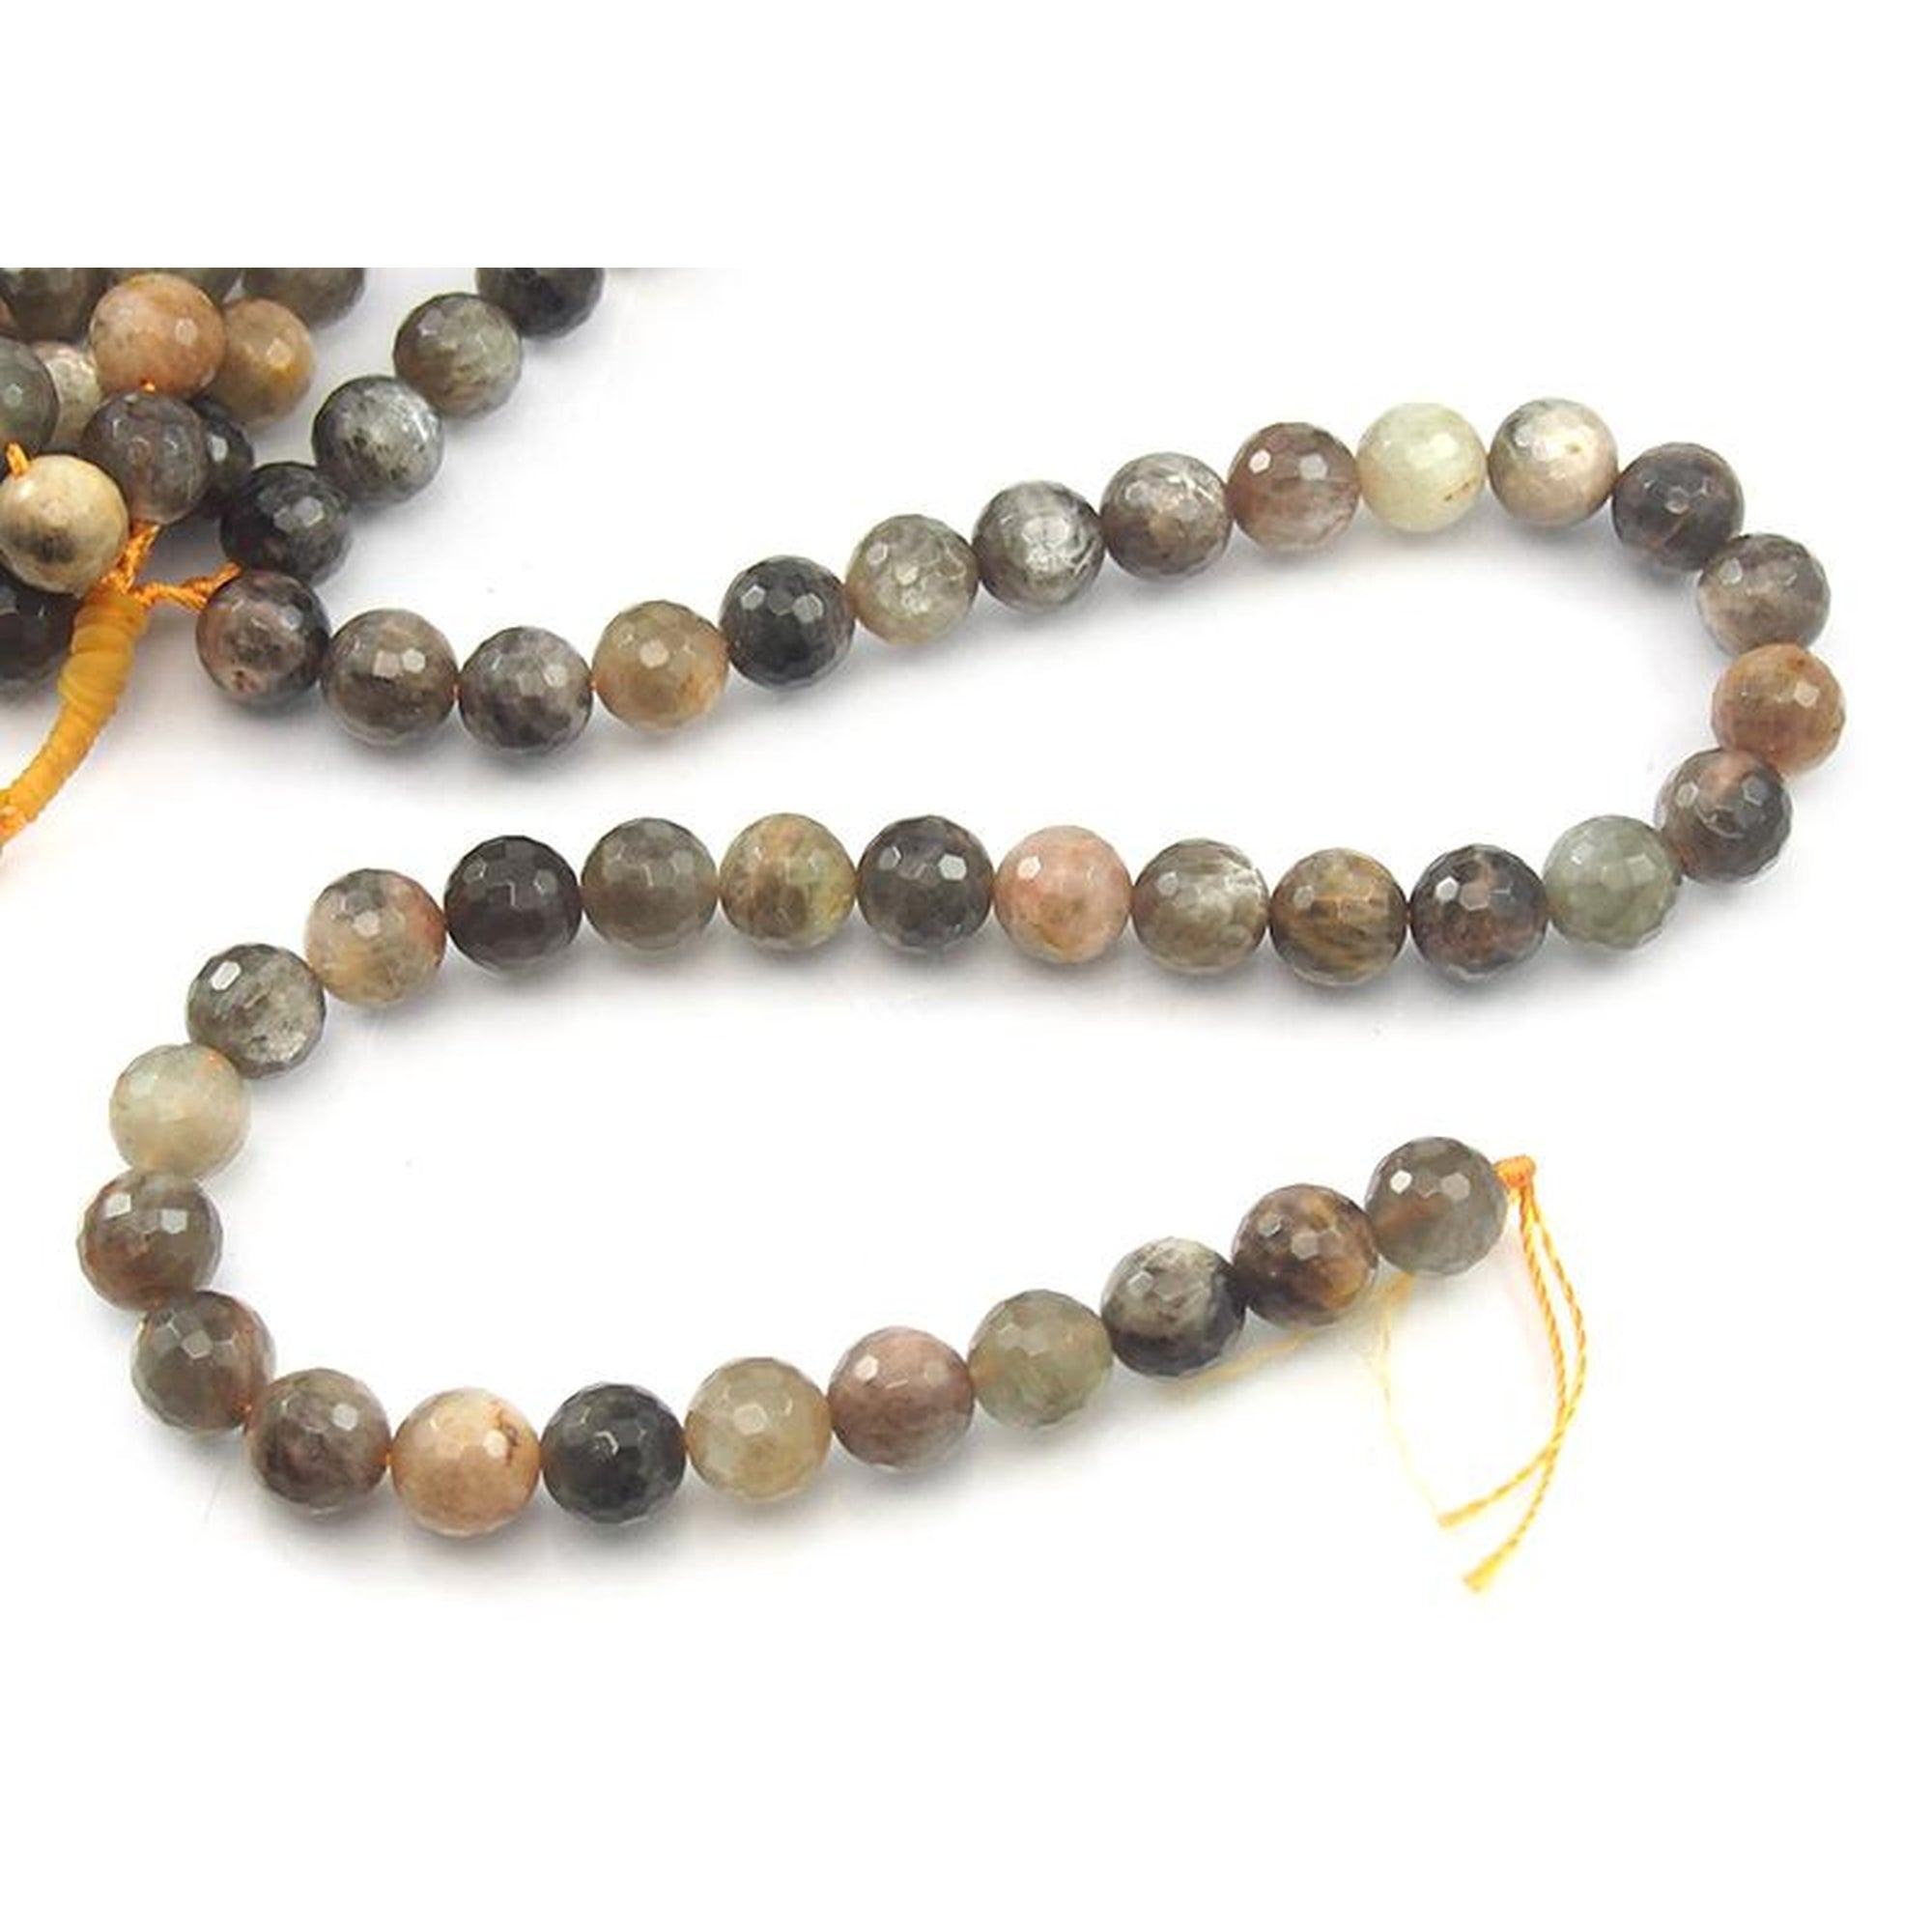 craft llc transparent beads beadtin orange gold sunburst